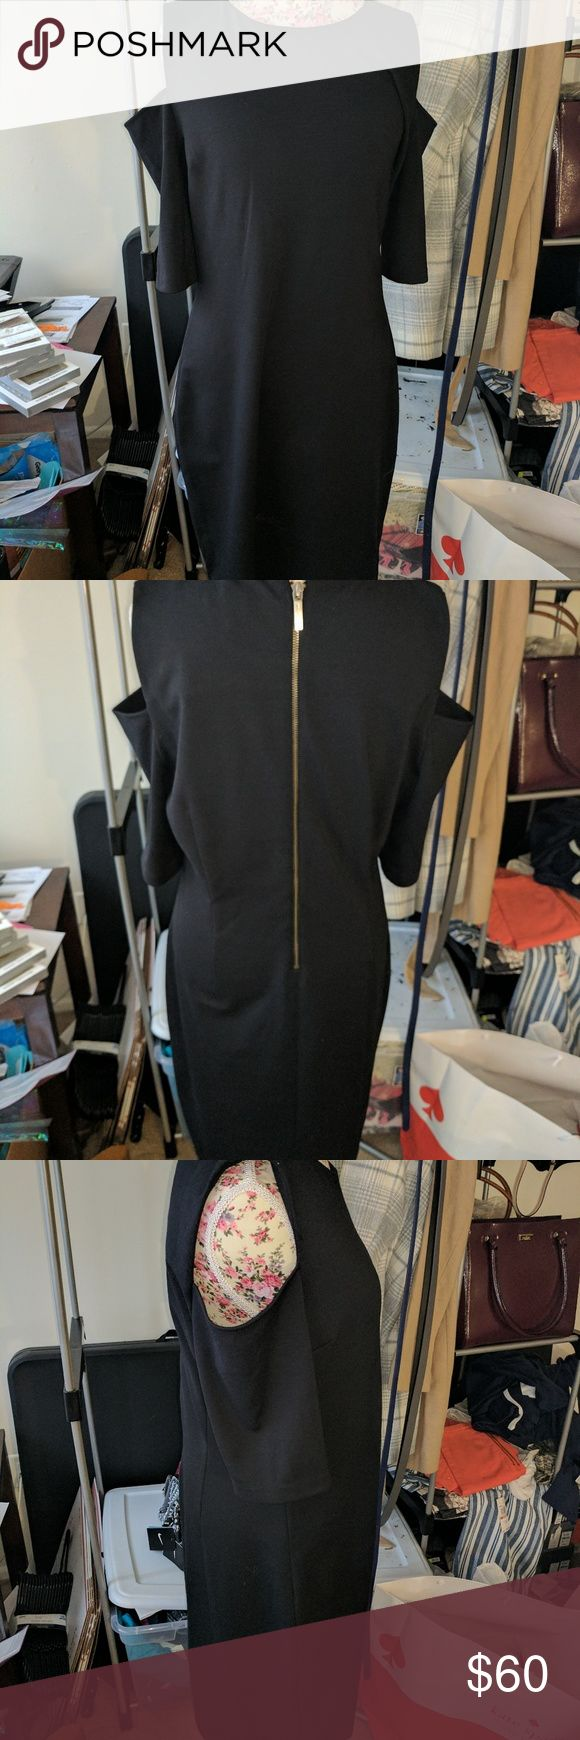 Michael Kors black cold shoulder dress New with tags black cold shoulder dress with gold zipper.  There is some deodorant on dress from someone trying on, not permanent I just like to mention everything.  Size XL. #michaelkors  #littleblackdress #coldshoulder Michael Kors Dresses